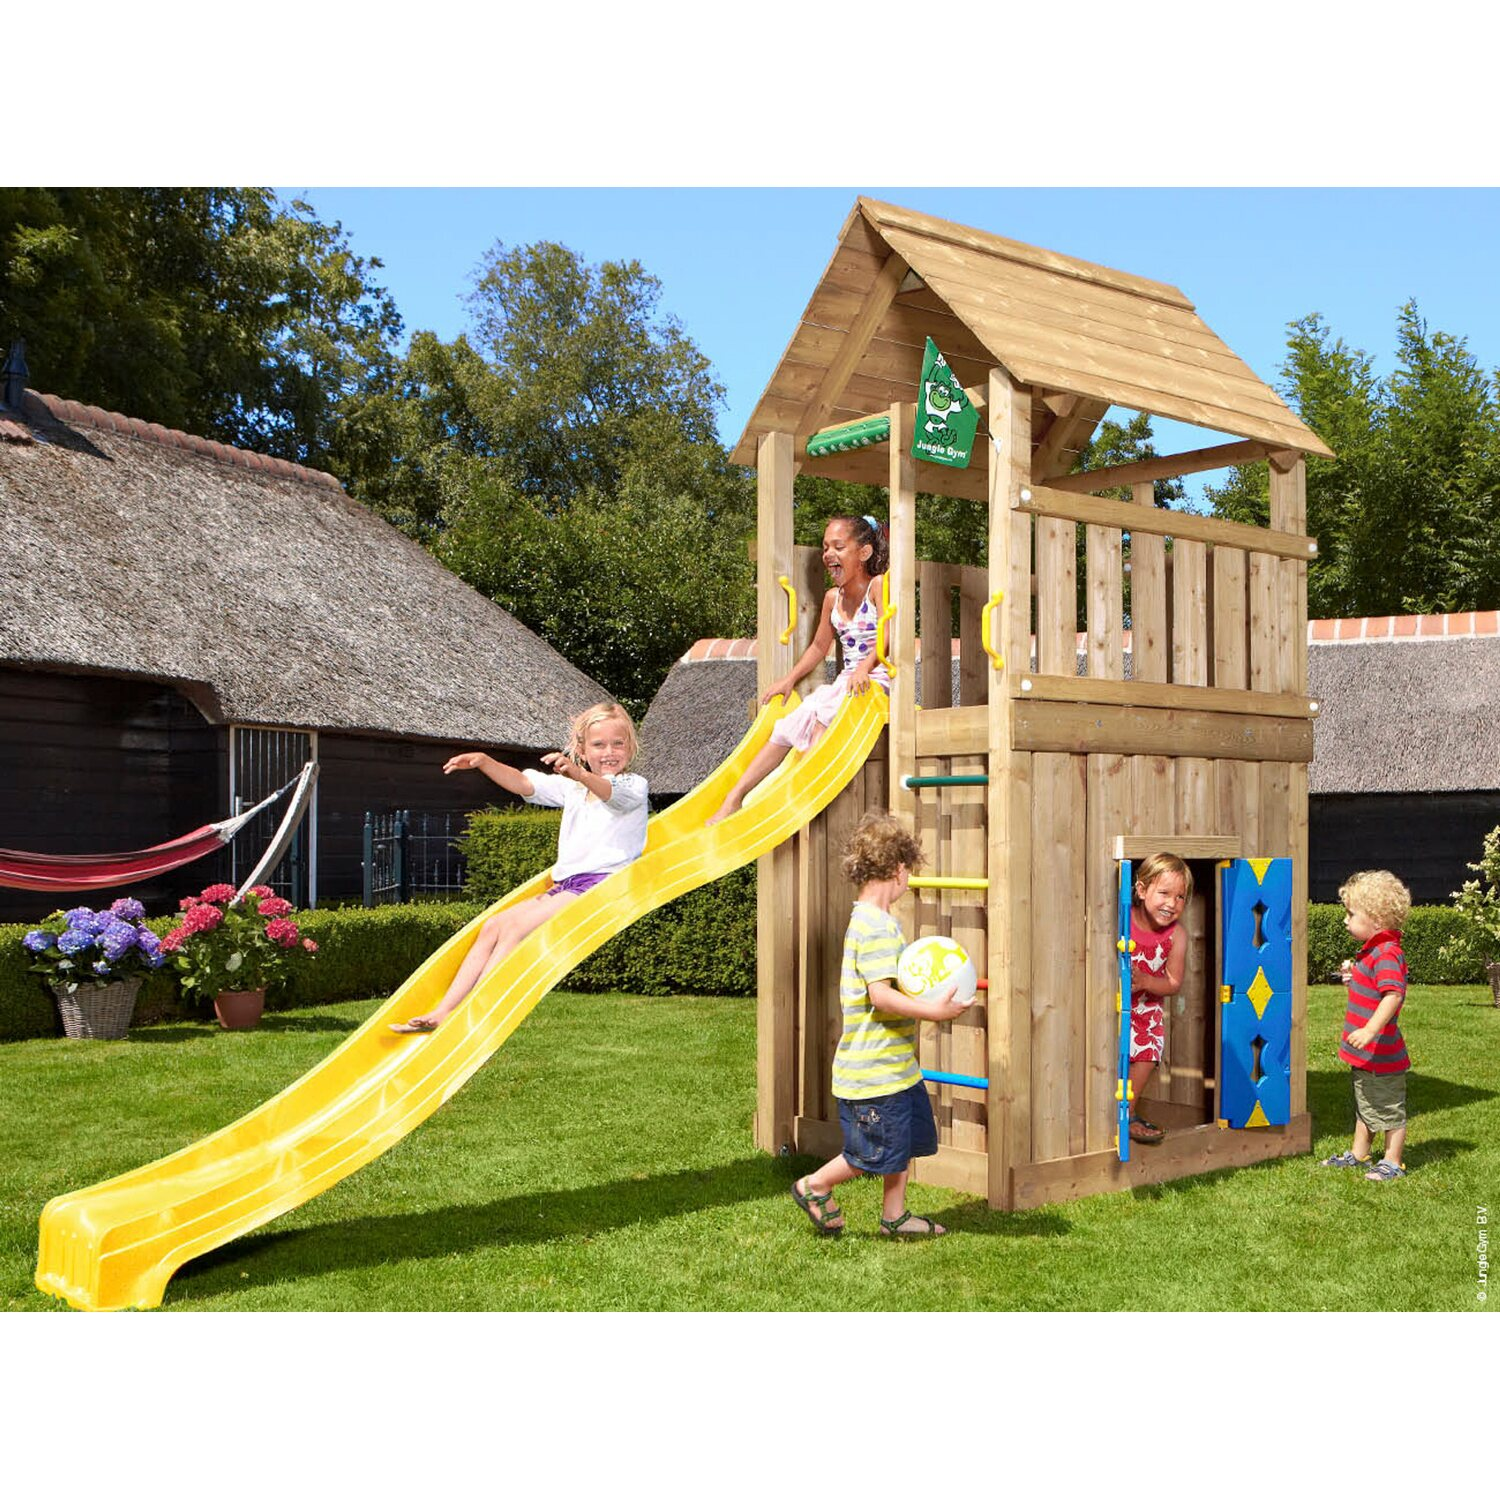 jungle gym holzspielturm cabin spielhaus mit rutsche gelb kaufen bei obi. Black Bedroom Furniture Sets. Home Design Ideas